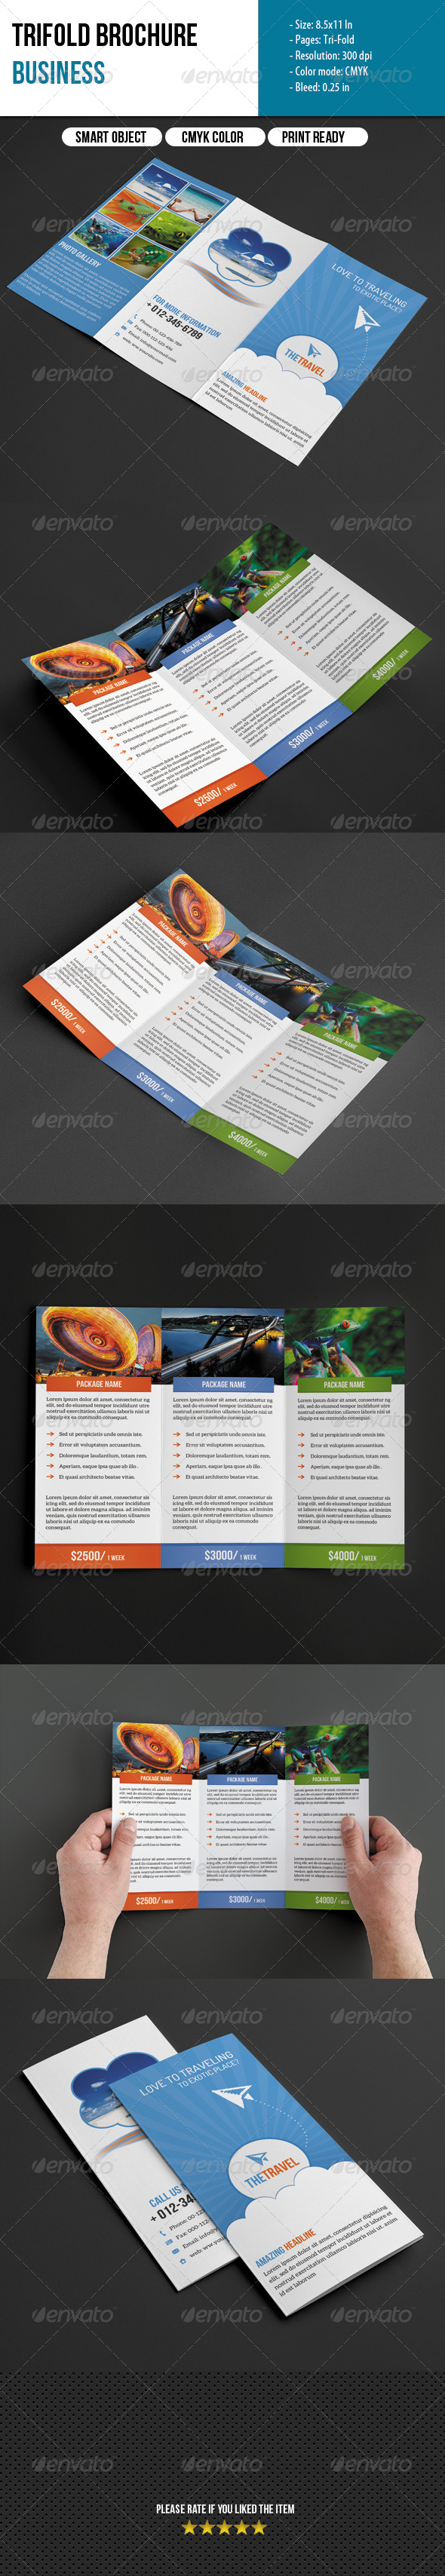 GraphicRiver Trifold Brochure-Travel Business 6370488